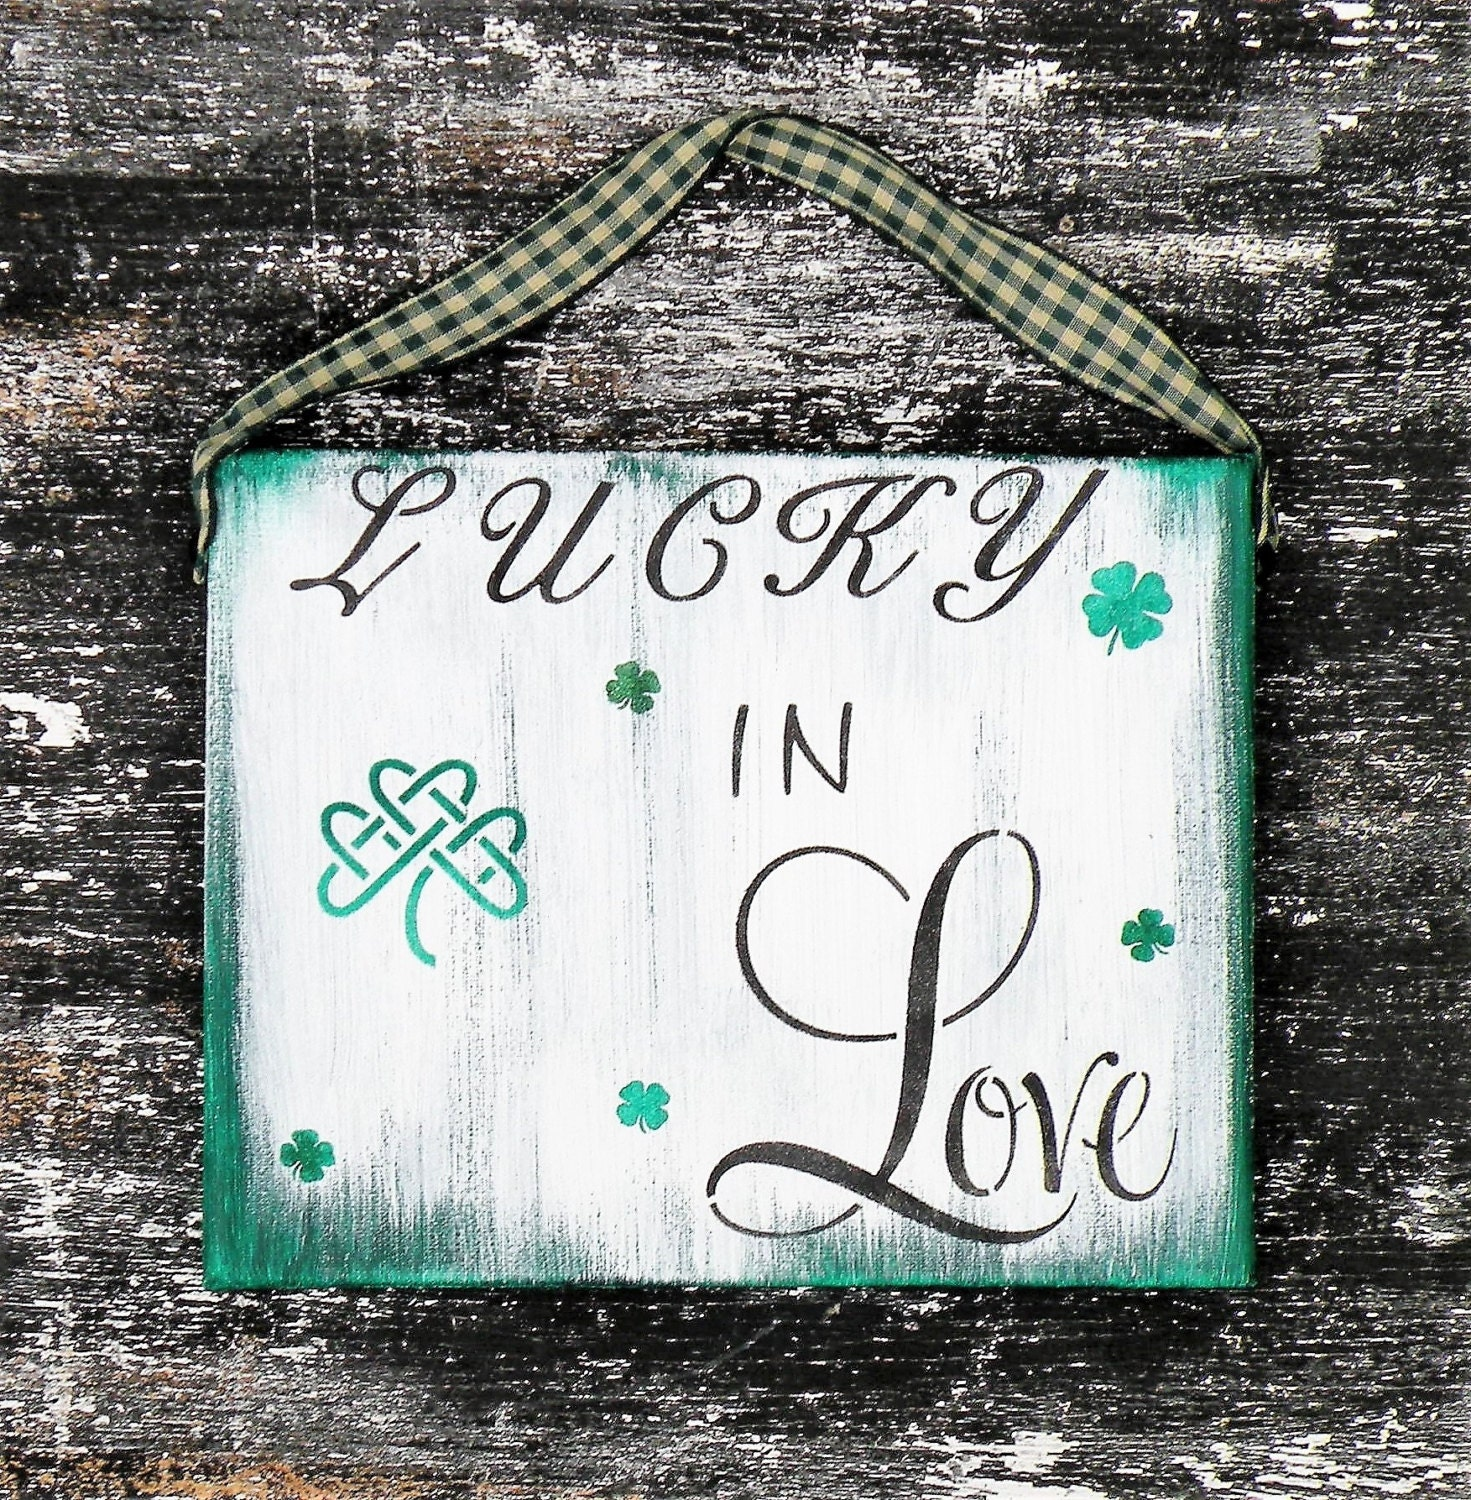 Irish Love Quotes Wedding Awesome Lucky In Love Irish Love Canvas Quote Sign Irish Valentine